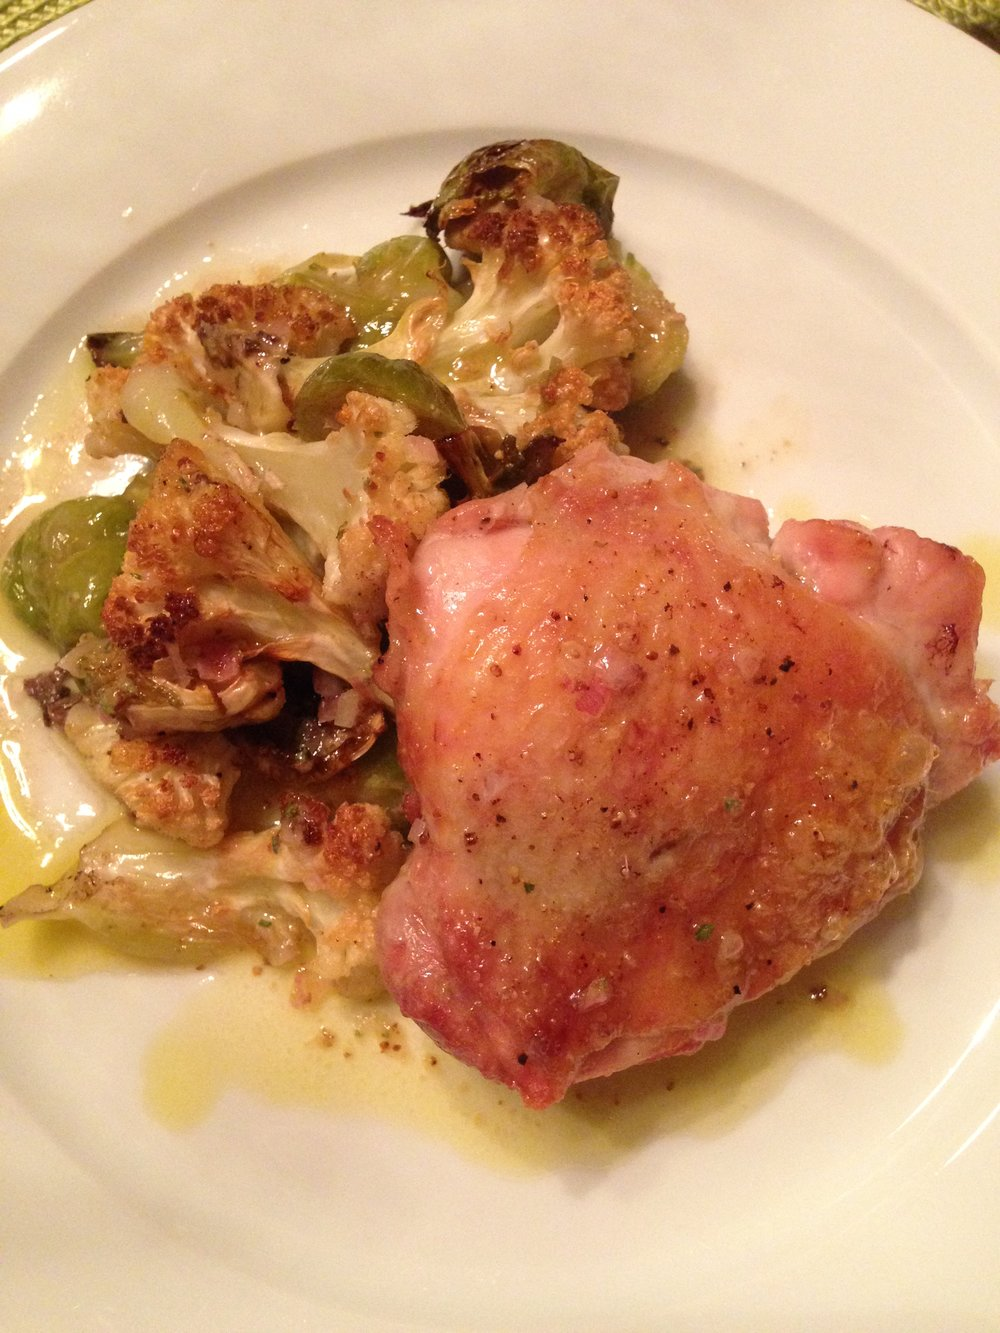 Sheet Pan Roasted Chicken thights%2c cauliflower%2c and brussel sprouts.JPG